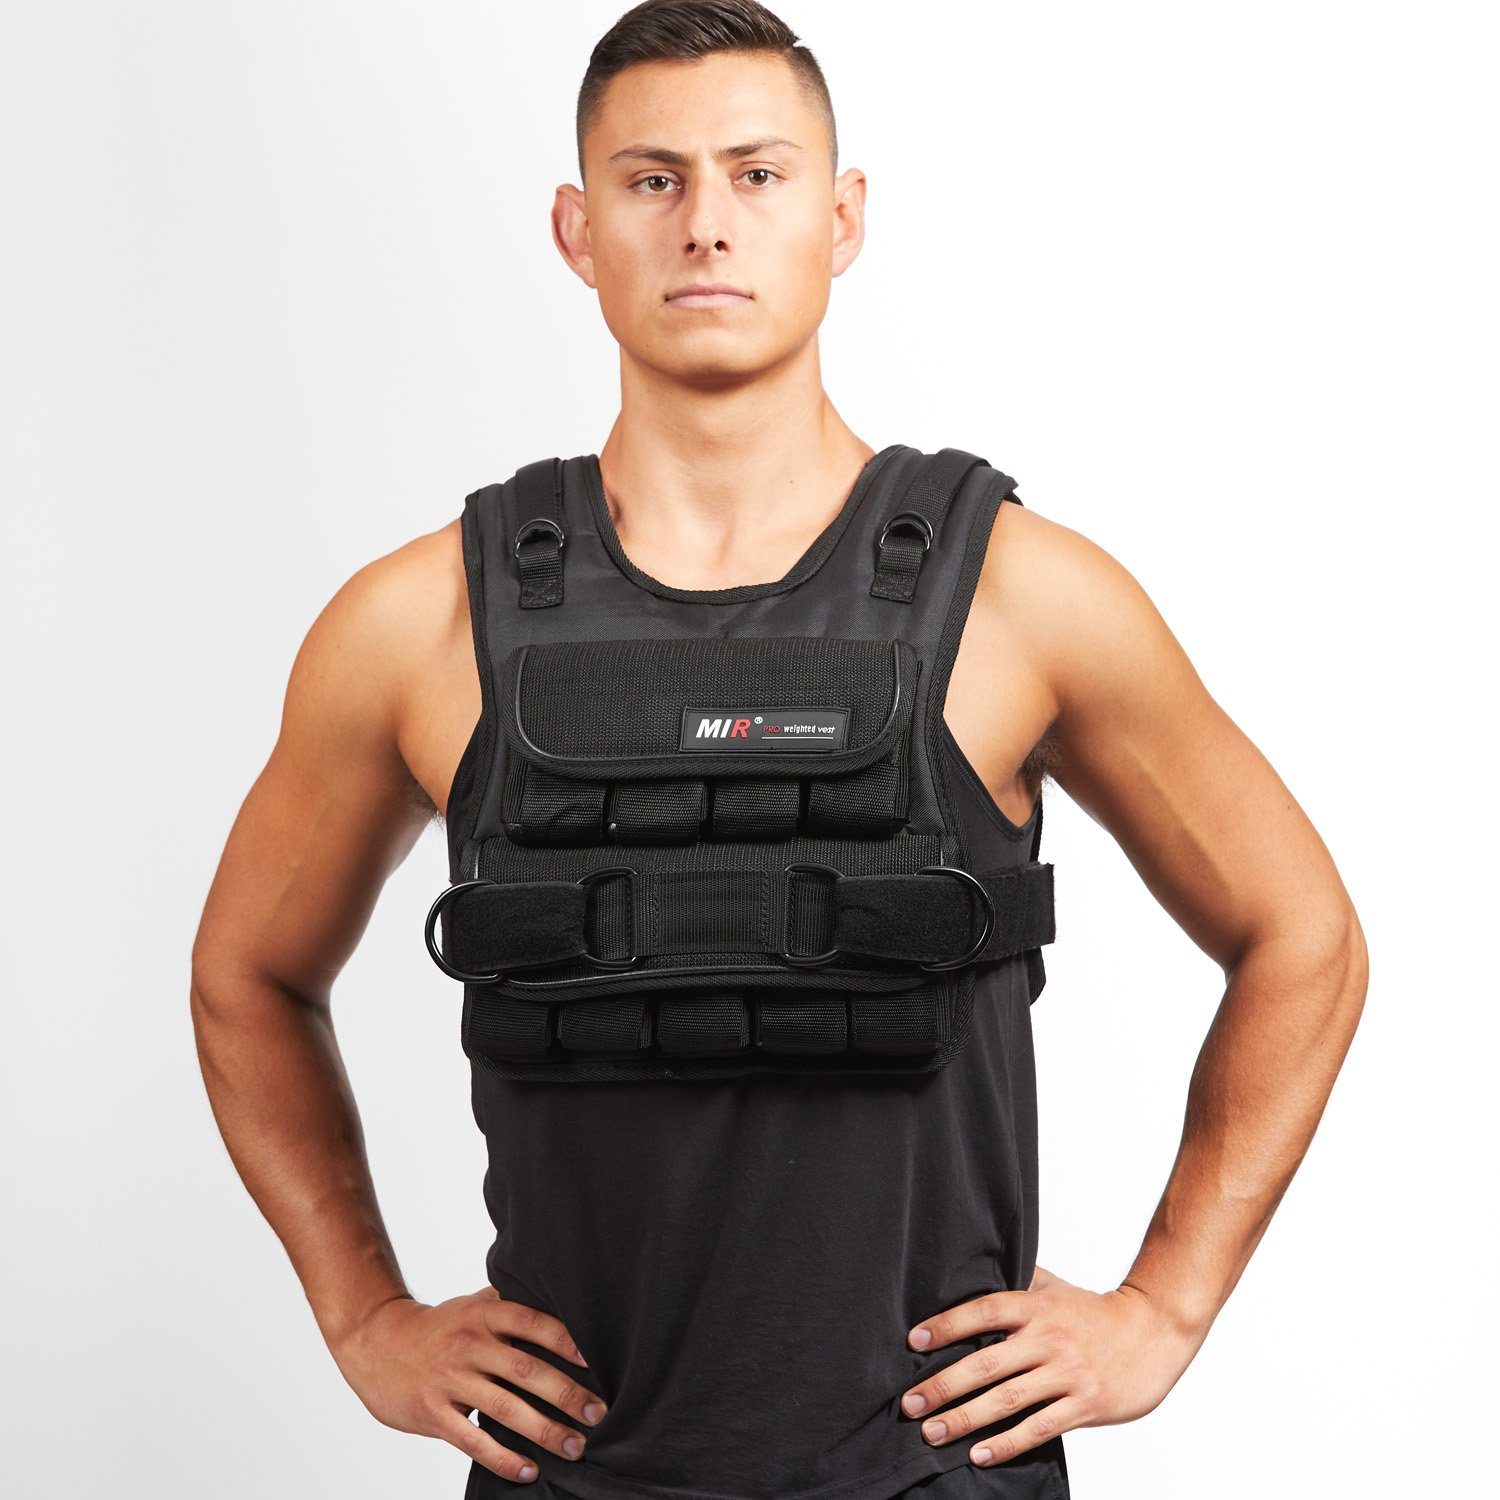 MIR 50LBS Short Adjustable Weighted Vest by Mir